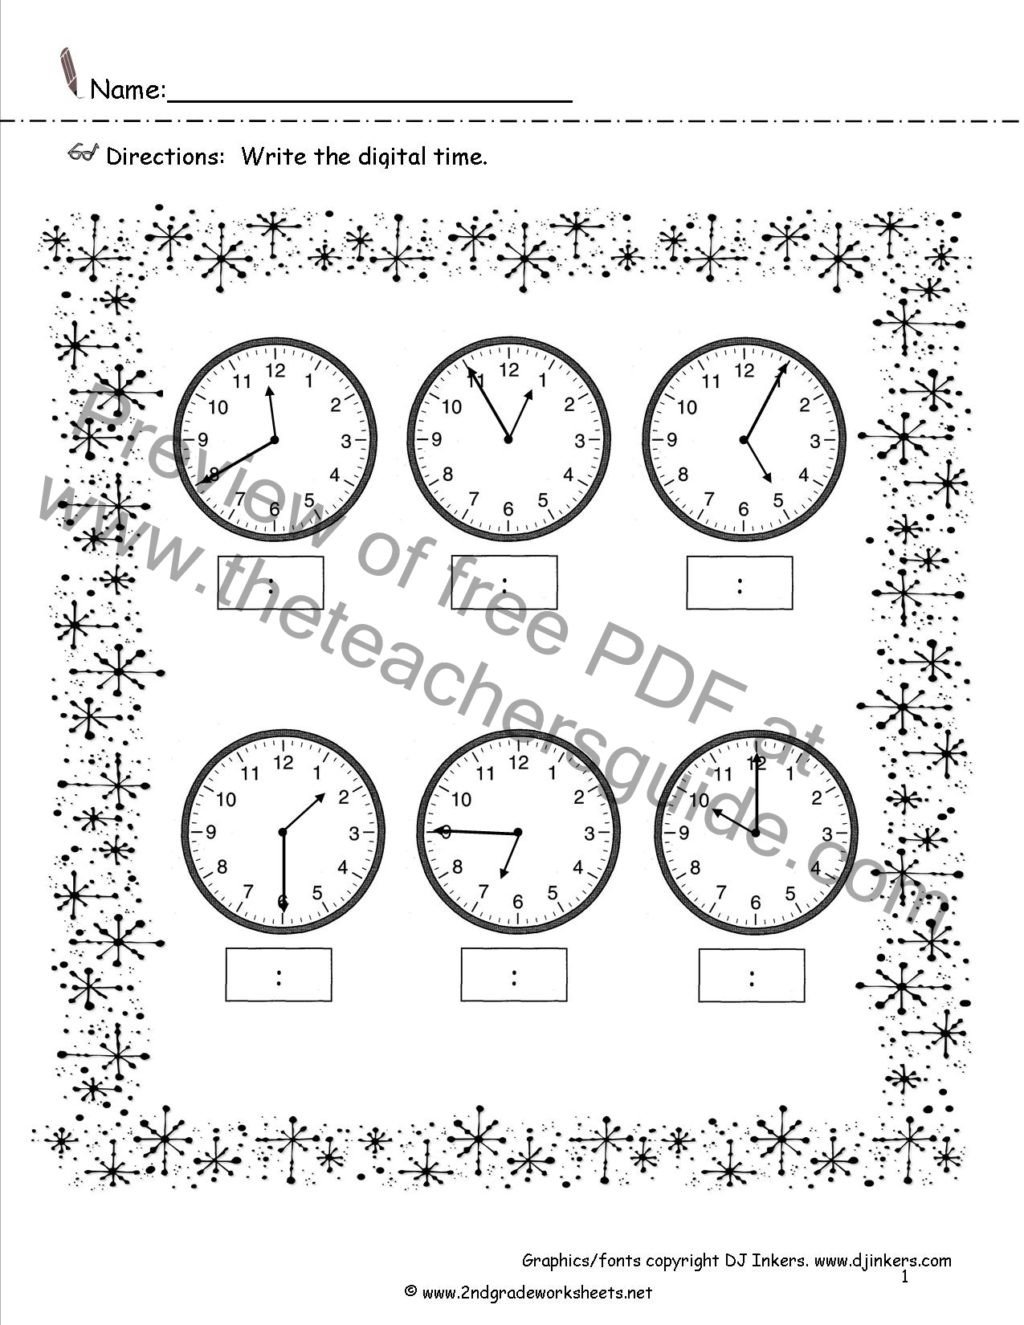 Super Teachers Worksheets Password Worksheet Worksheet Kindergartenrksheets Money Management